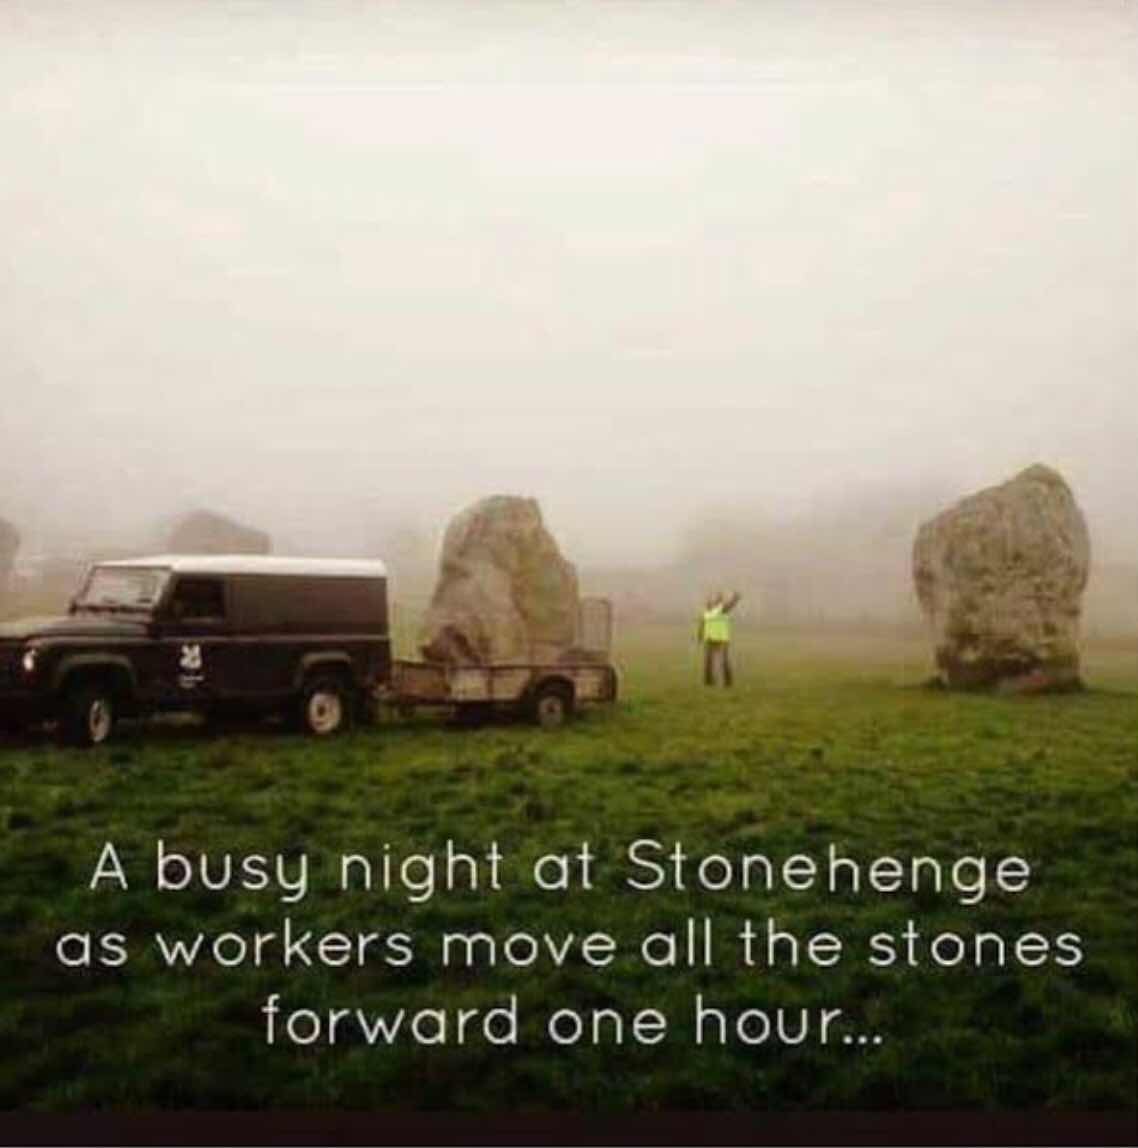 Adjusting stones at Stone Henge (Source: Unknown, post on Facebook)